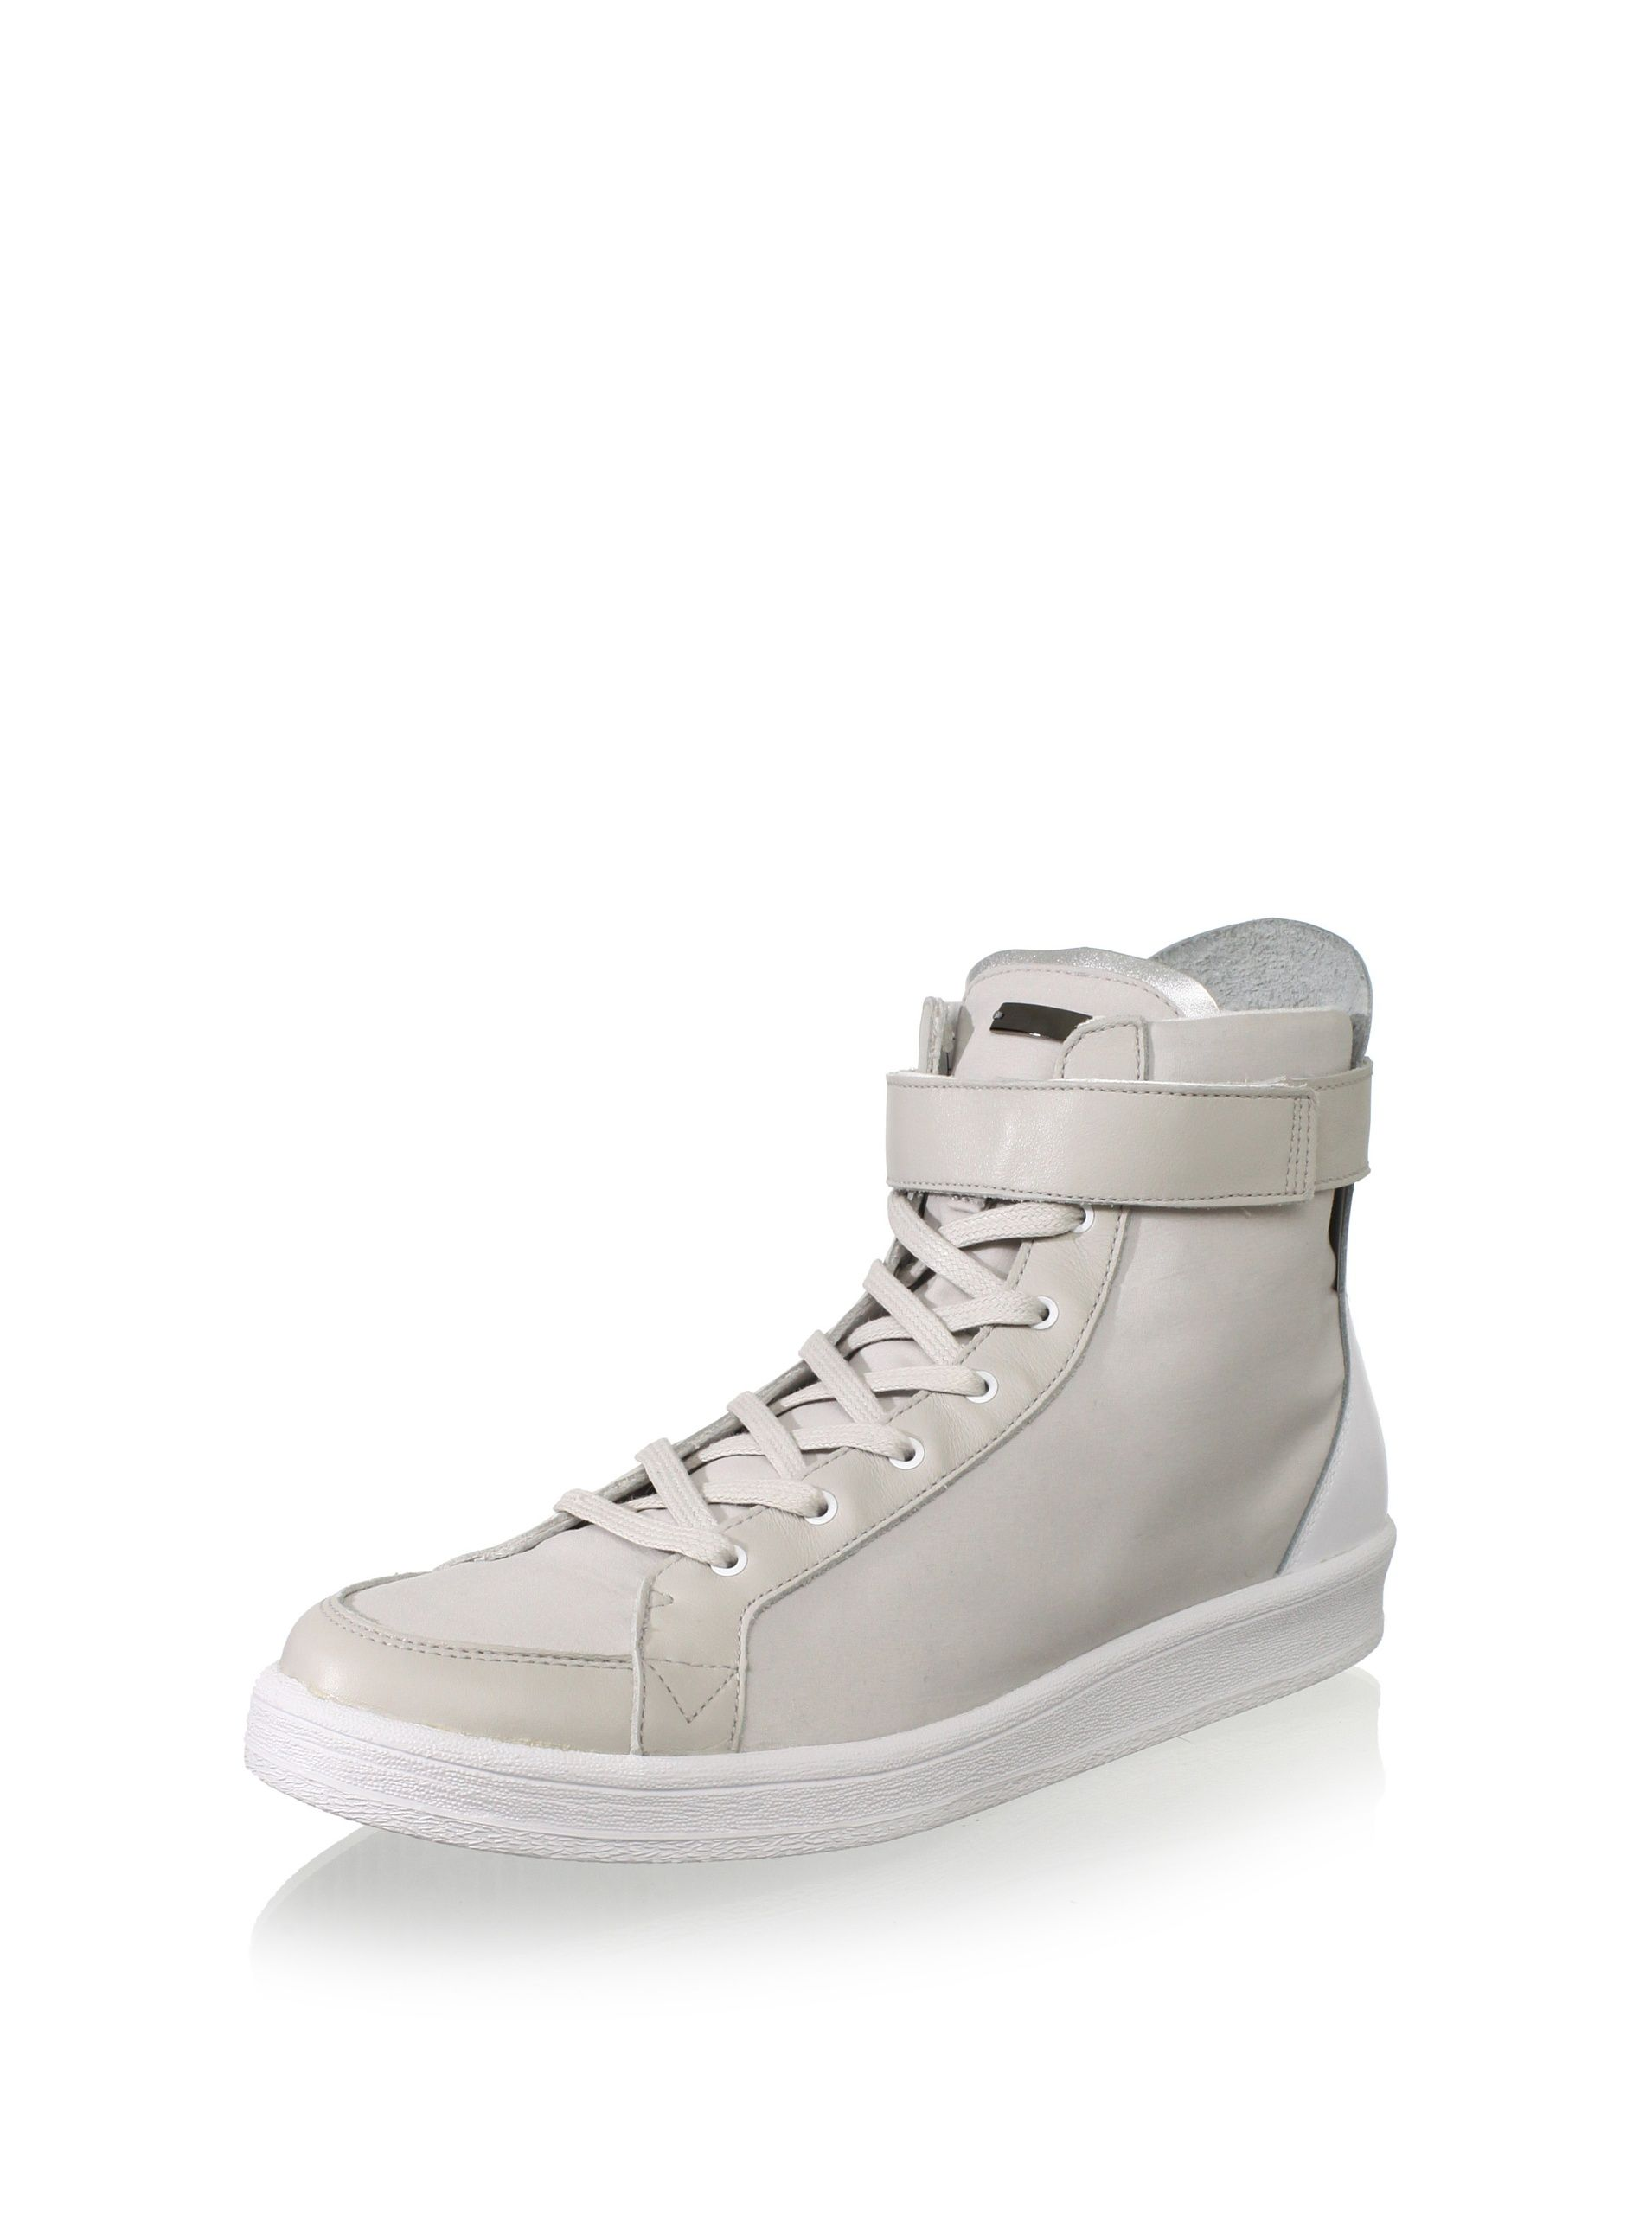 411ab49f4bc8 adidas SLVR Men s Cupsole Hi-Top Sneaker (Light Grey White Silver) Hi-top  design features a hook-and-loop strap and a contrasting back leather panel  ...